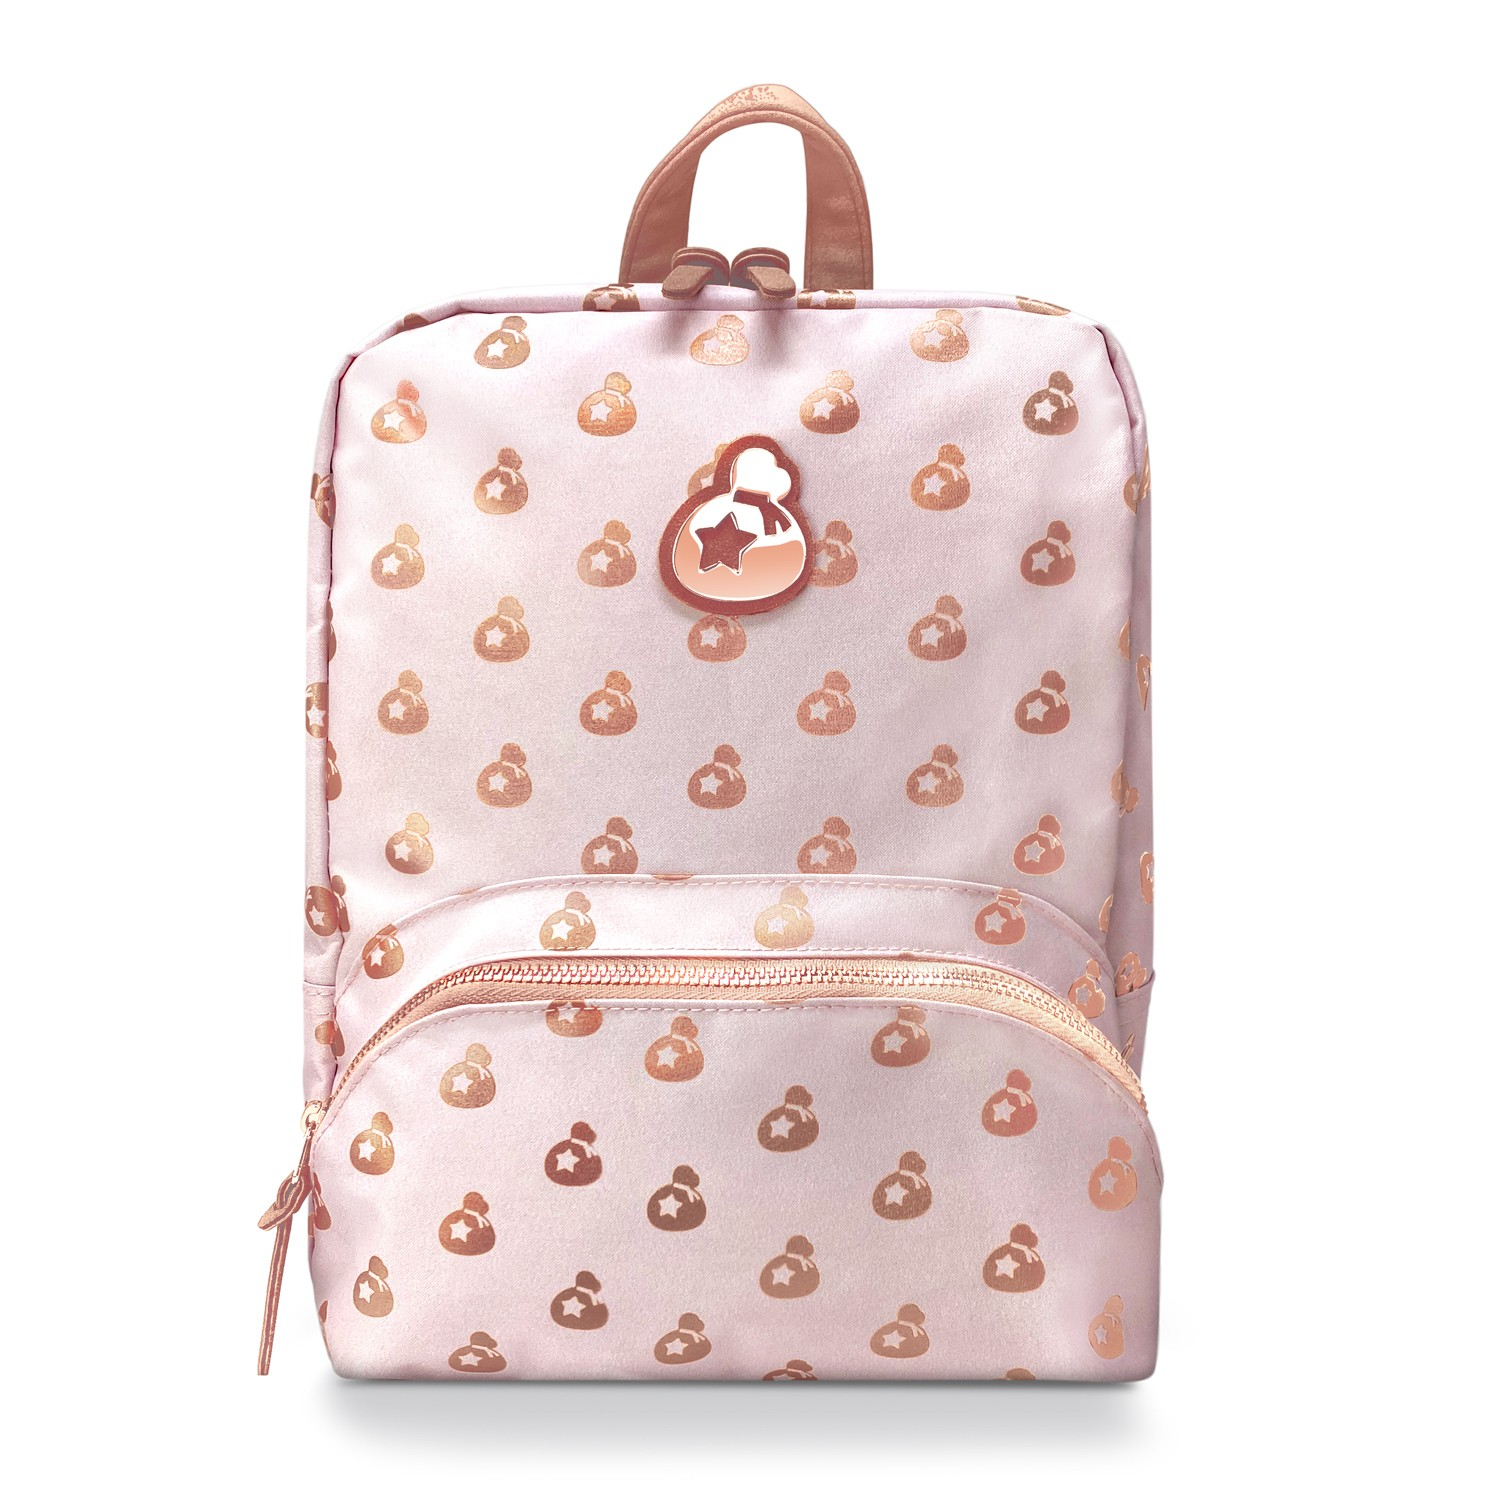 Official Nintendo Animal Crossing Collectors Set New Horizons: Rose Gold Island Mini Backpack Switch Case, Celeste Floral Knit Beanie Foldover